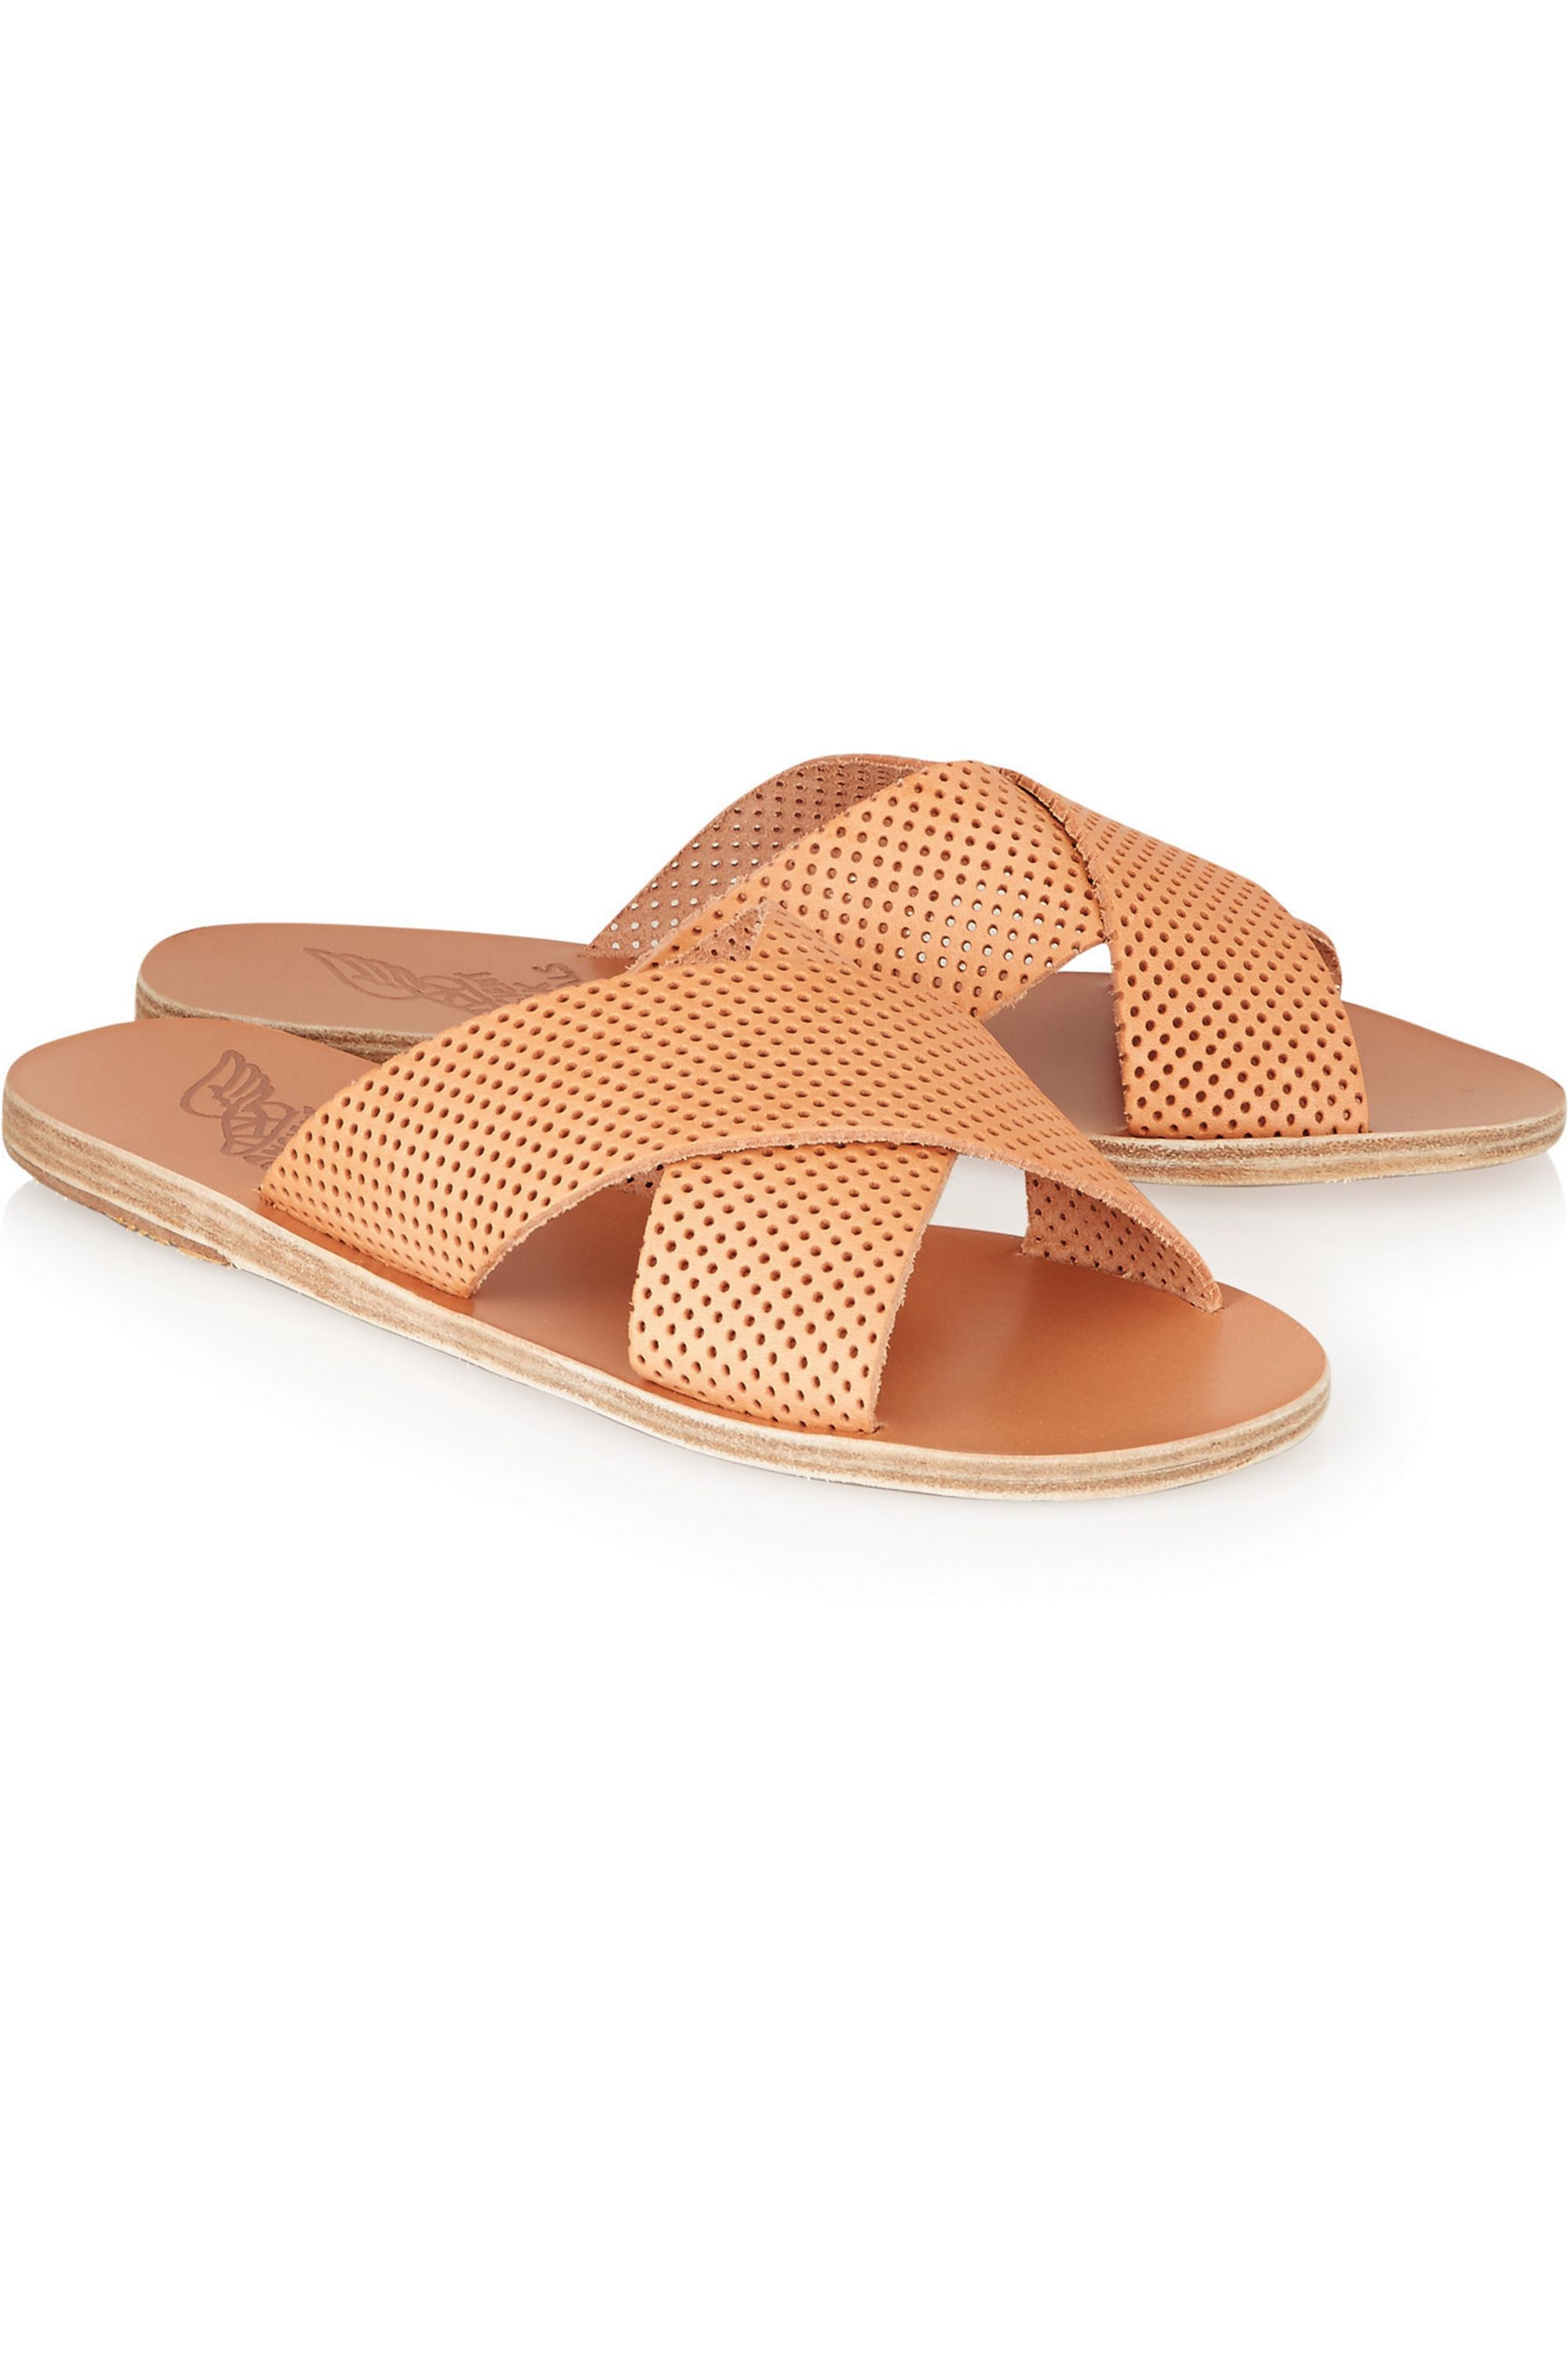 Ancient Greek Sandals Thais perforated leather slides